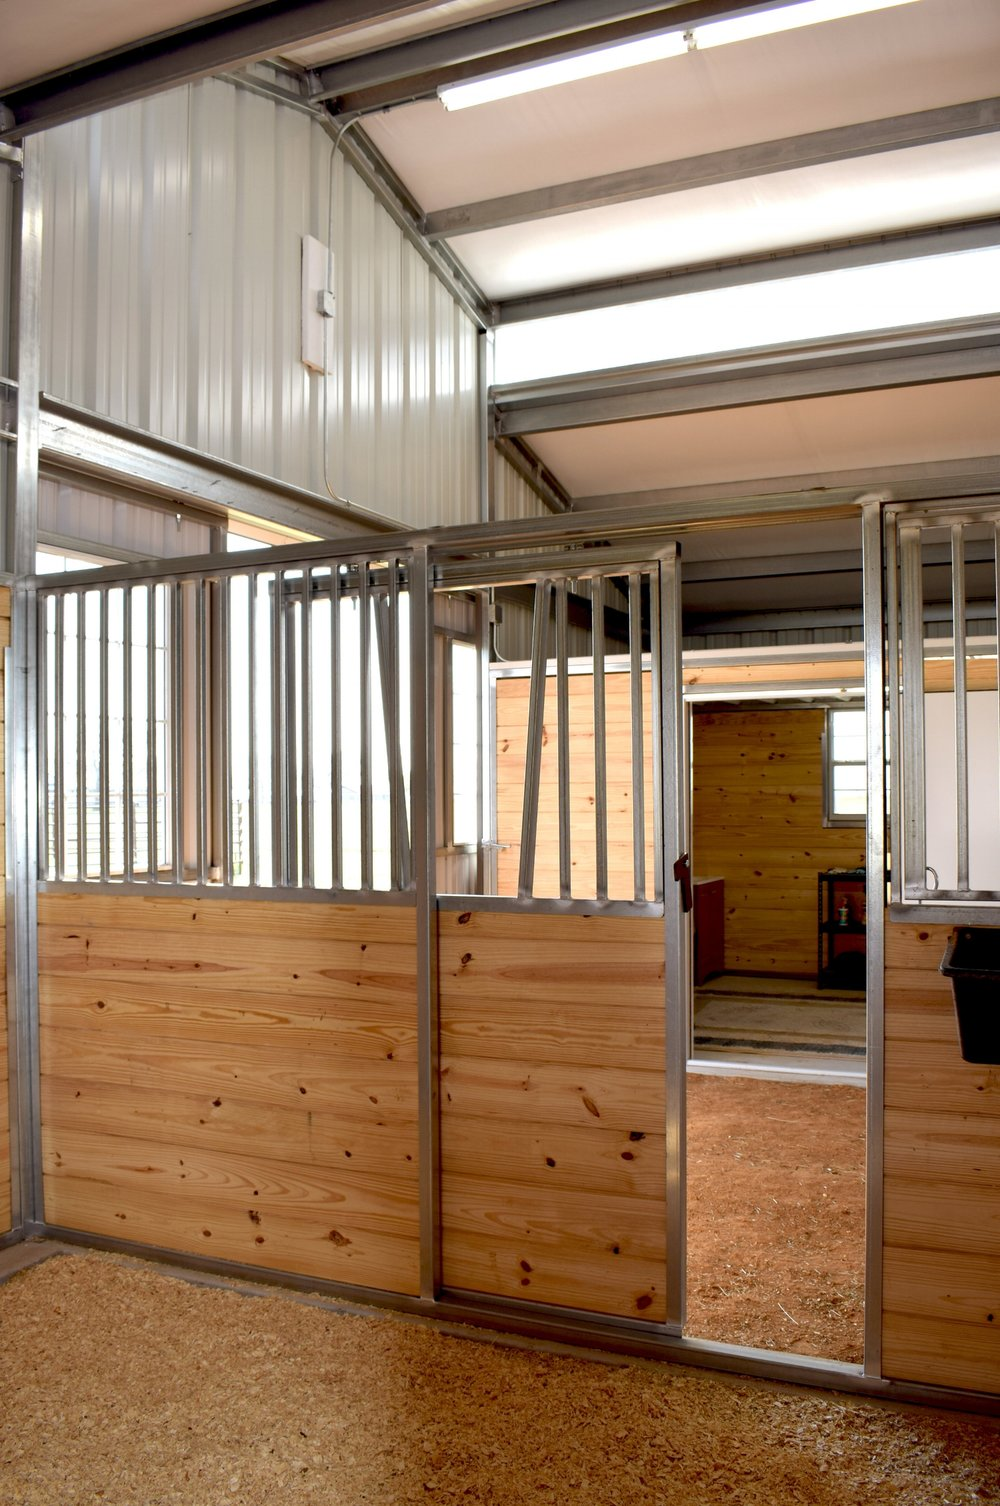 Sliding Stall Door with Yoke Grill, Raised Center Aisle with Skylights